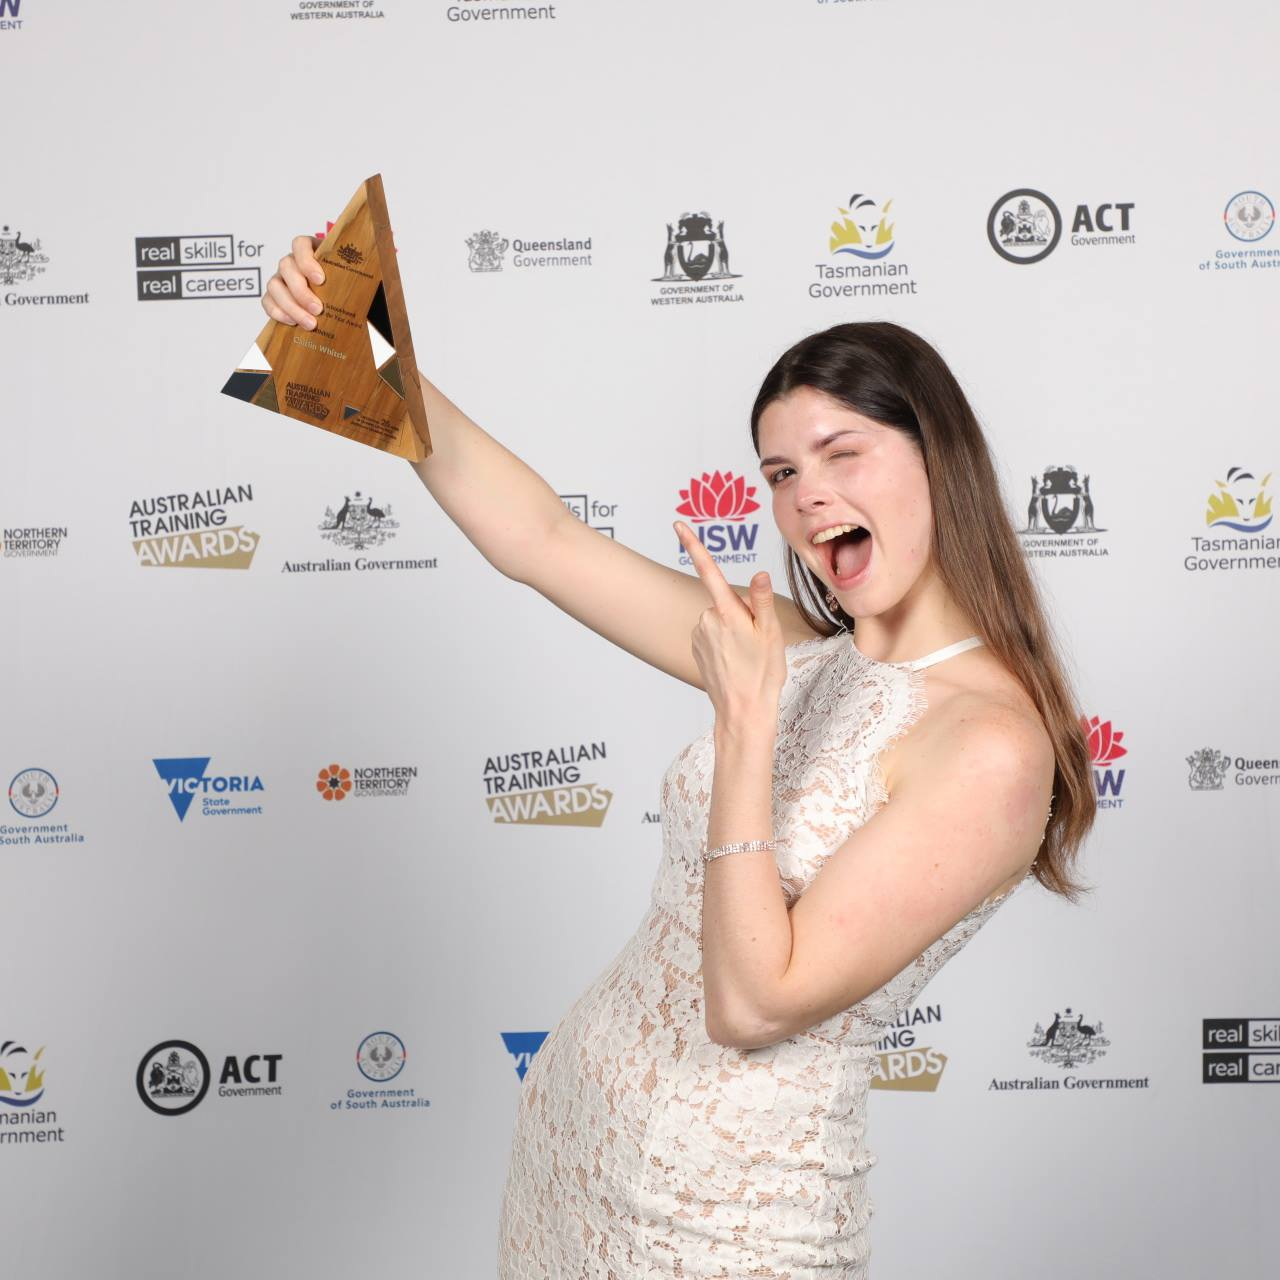 Photo Credit: Australian Training Awards